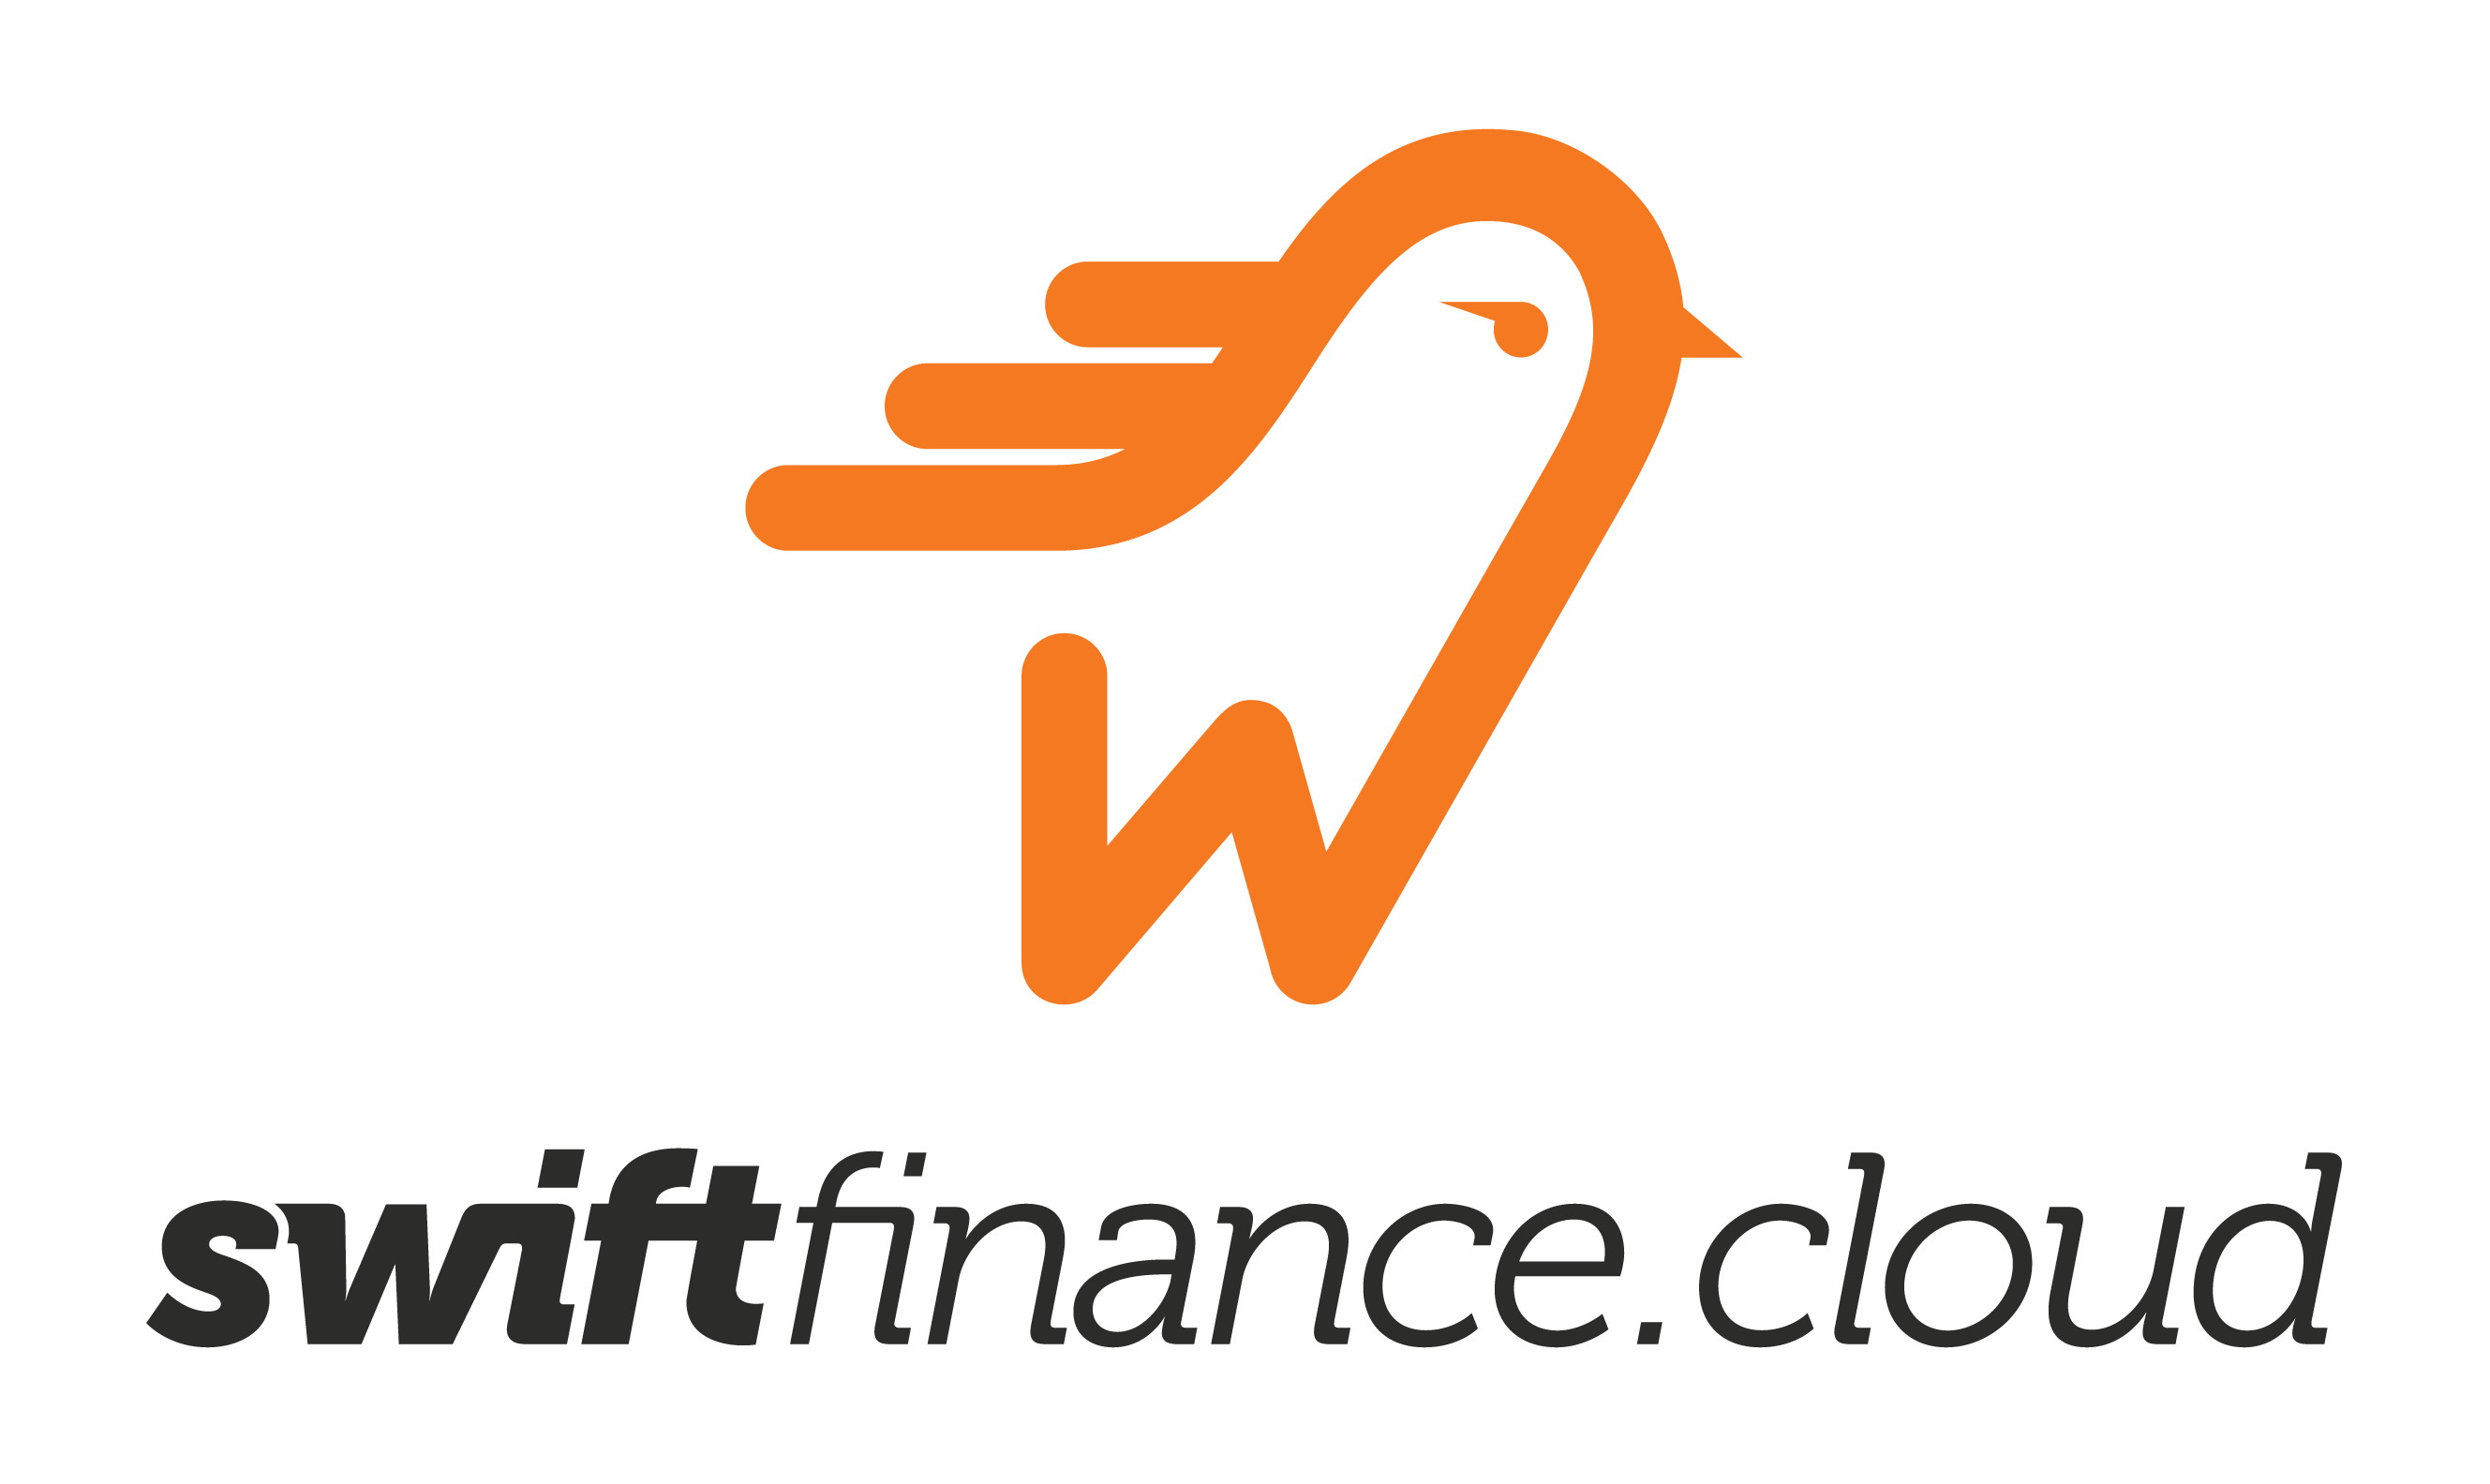 swiftfinance.cloud